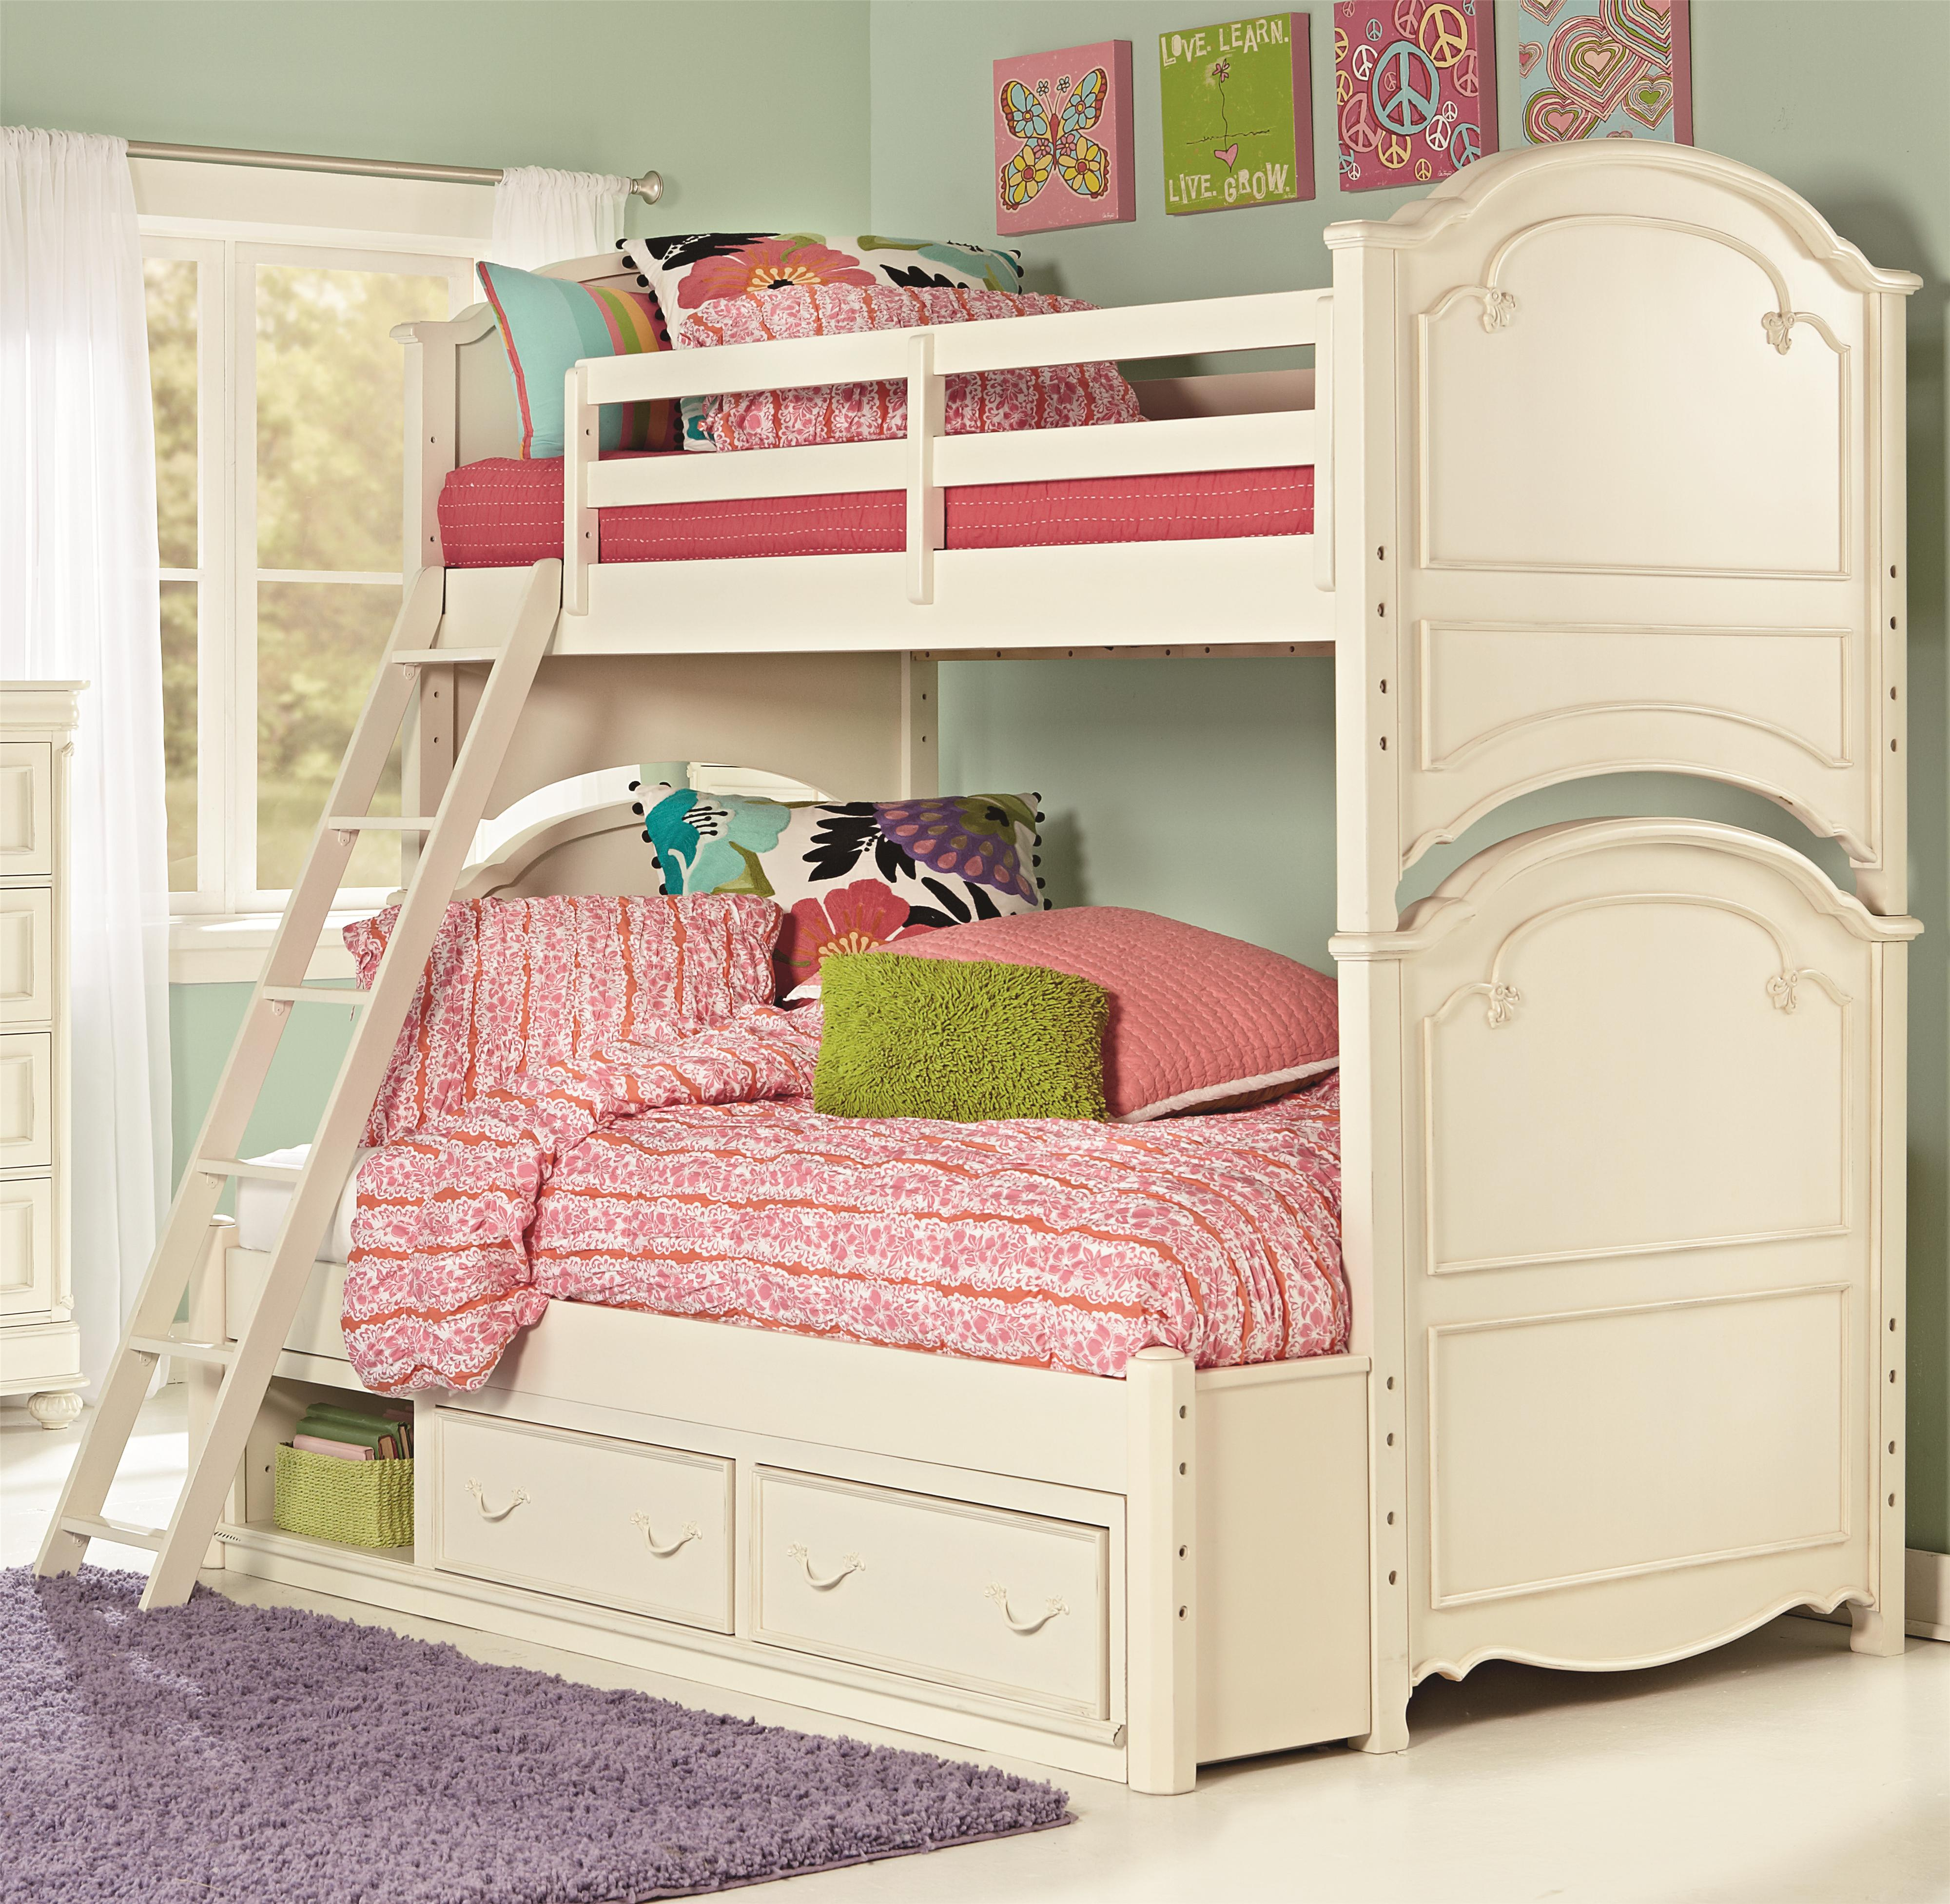 Legacy Classic Kids Charlotte Twin Over Full Bunk Bed with Storage - Item Number: 36850-8140K+9300